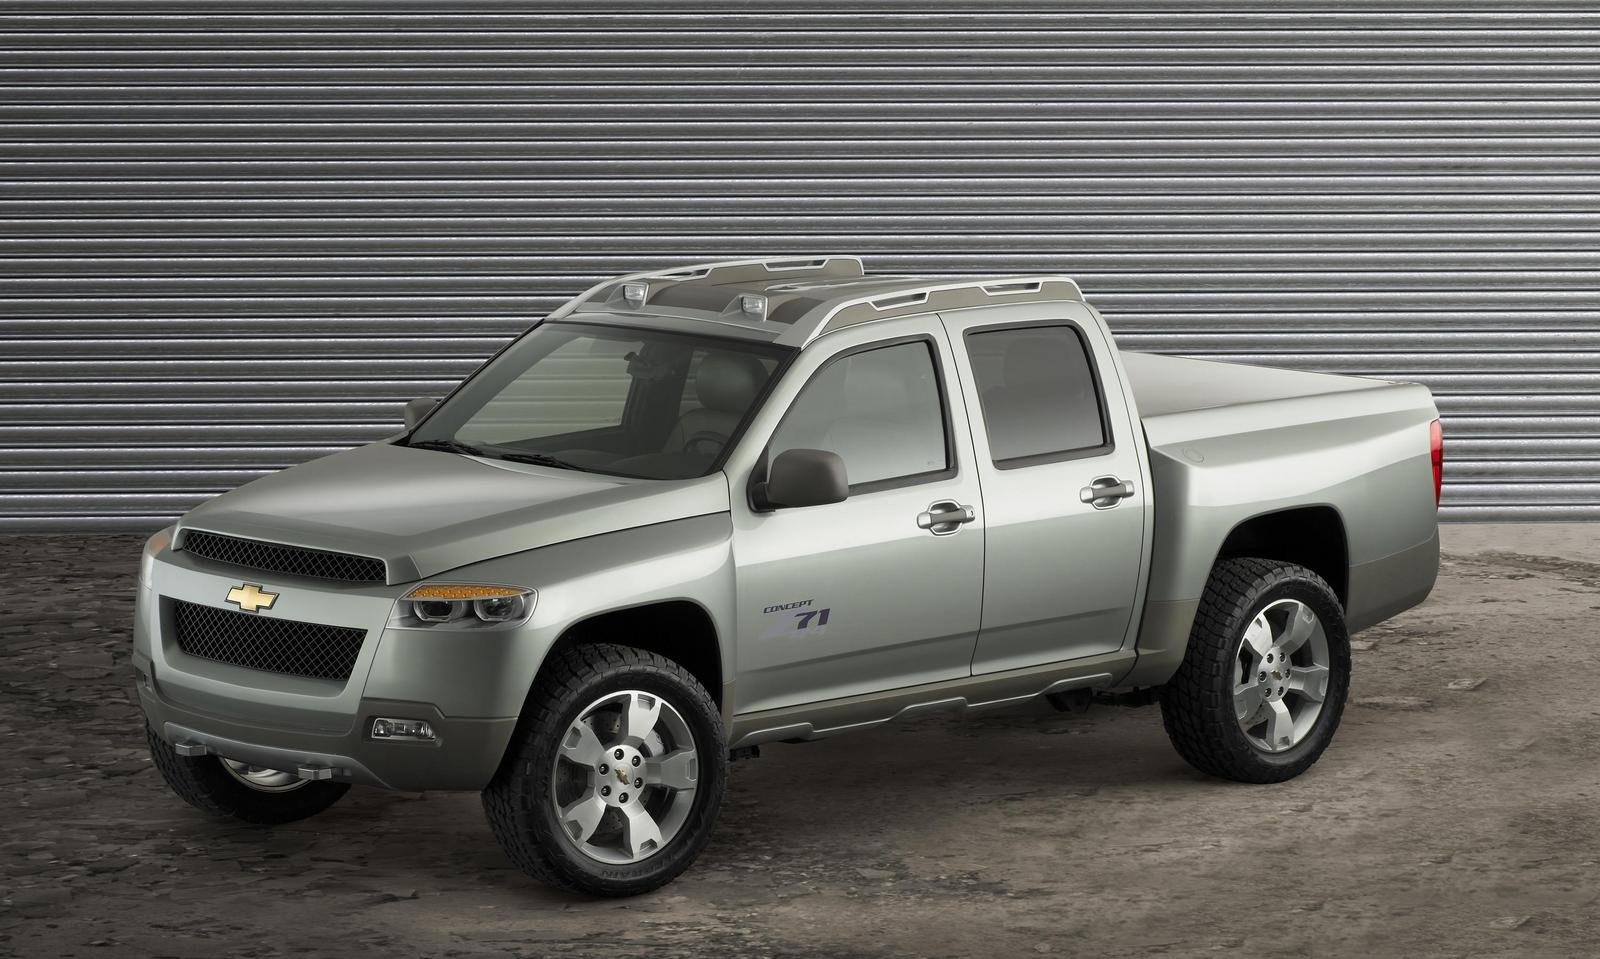 2007 chevrolet colorado crew cab z71 plus review top speed. Black Bedroom Furniture Sets. Home Design Ideas